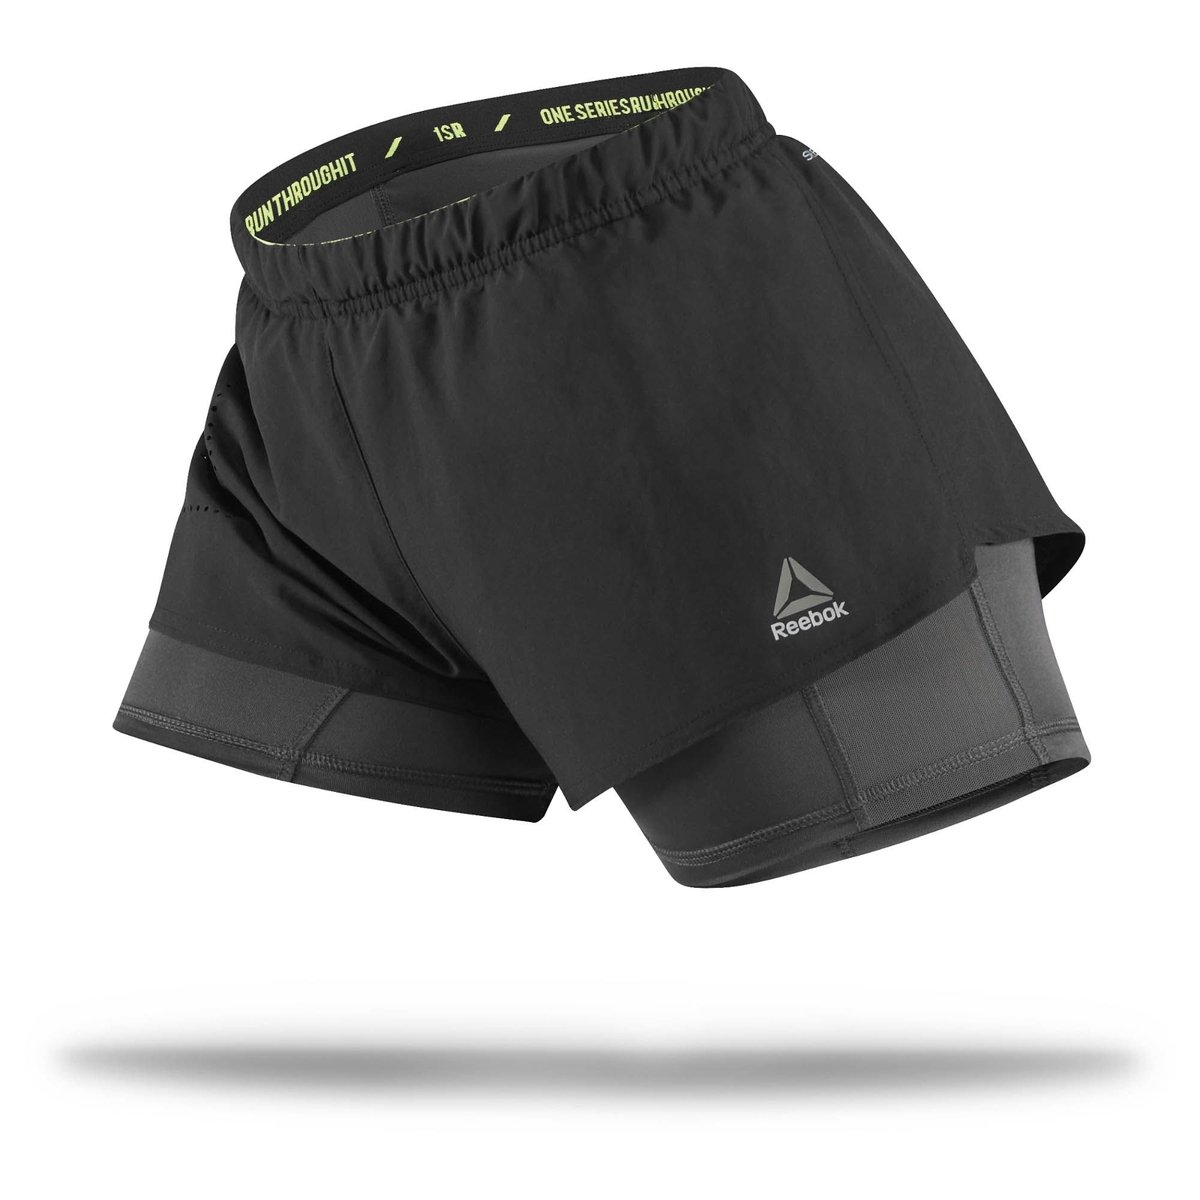 Reebok Preto Short 2In1 Reebok 2In1 Short One Series Series One wTnCEq4xIz